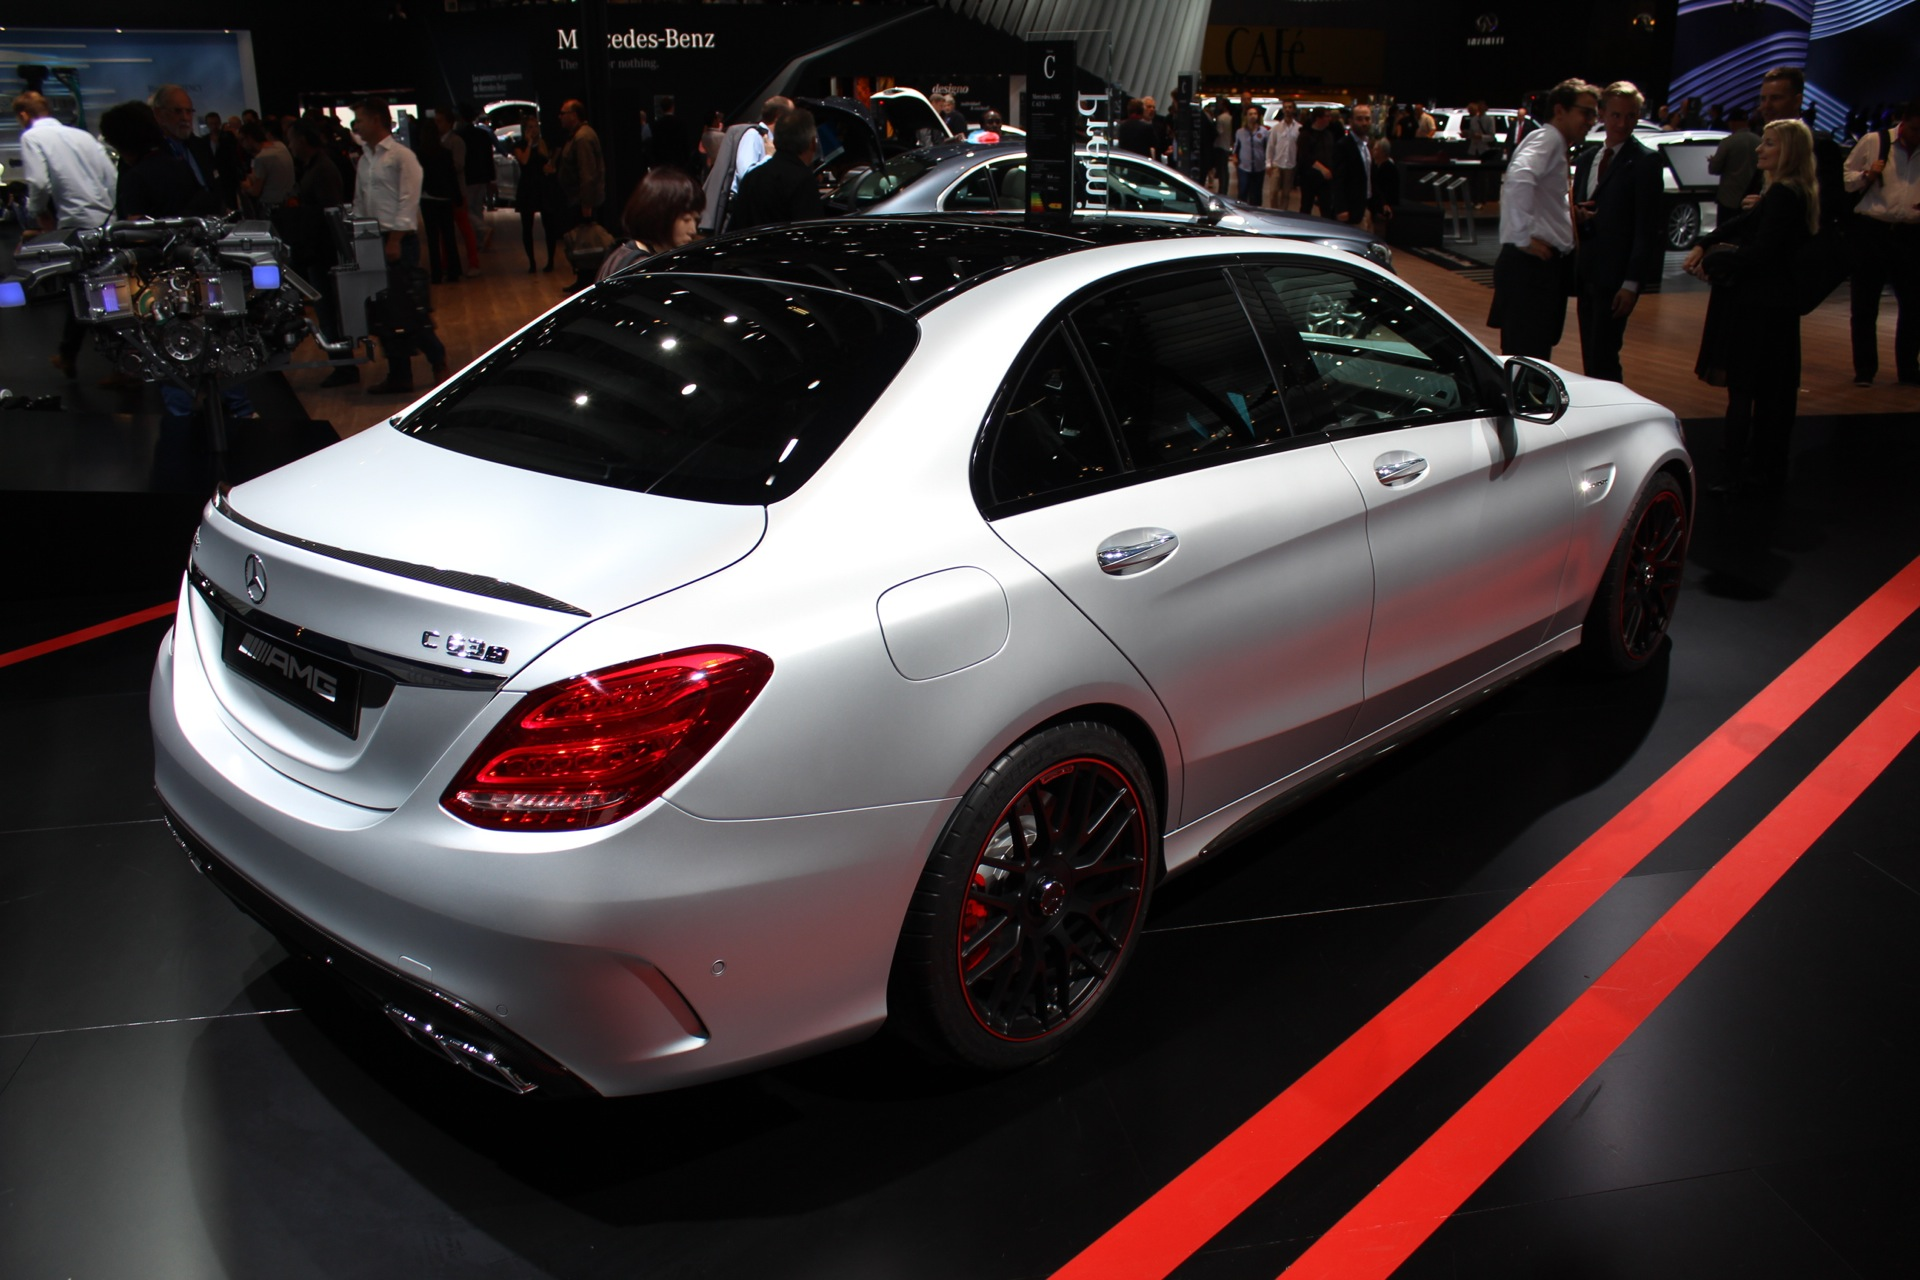 2015 mercedes amg c63 and c63s emercedesbenz. Black Bedroom Furniture Sets. Home Design Ideas